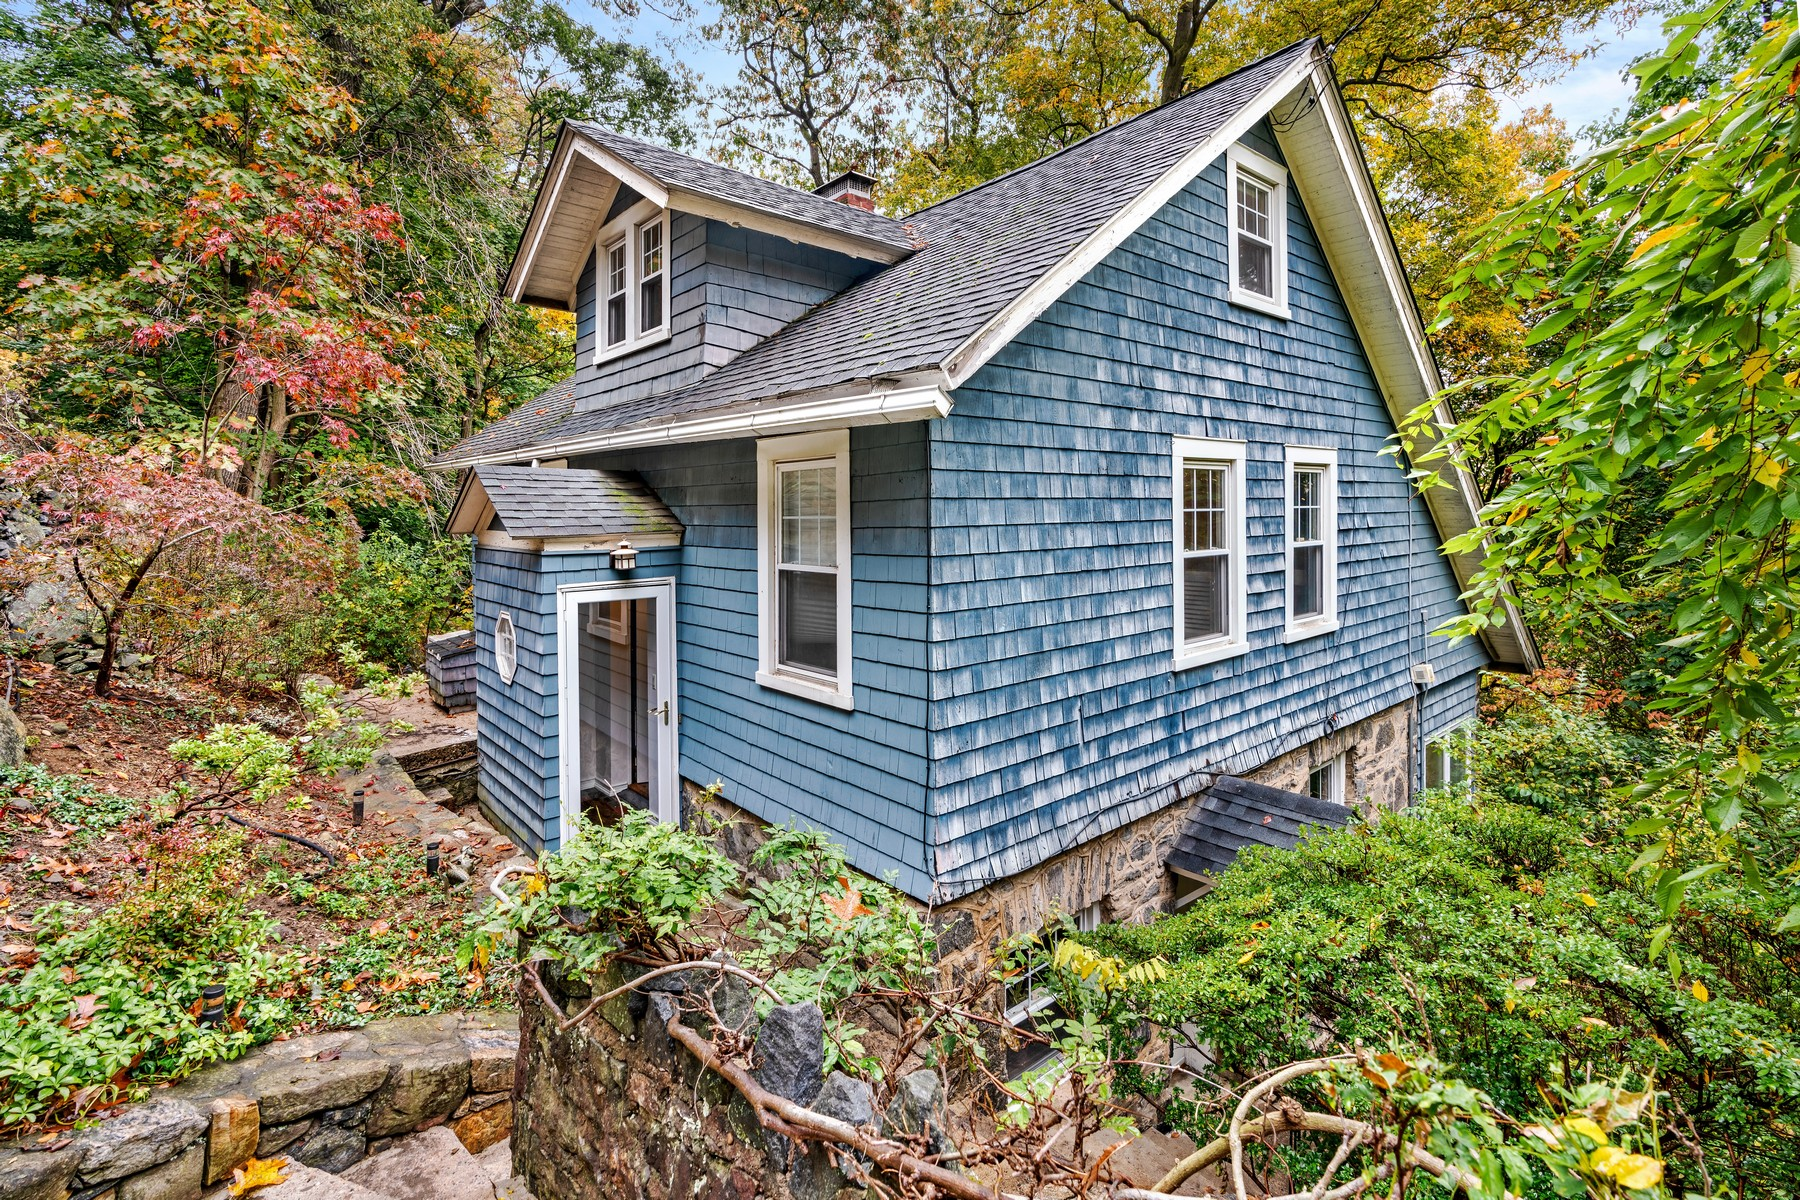 Single Family Homes for Sale at Romantic Arts & Crafts Cottage 21 Cliff Street Hastings On Hudson, New York 10706 United States